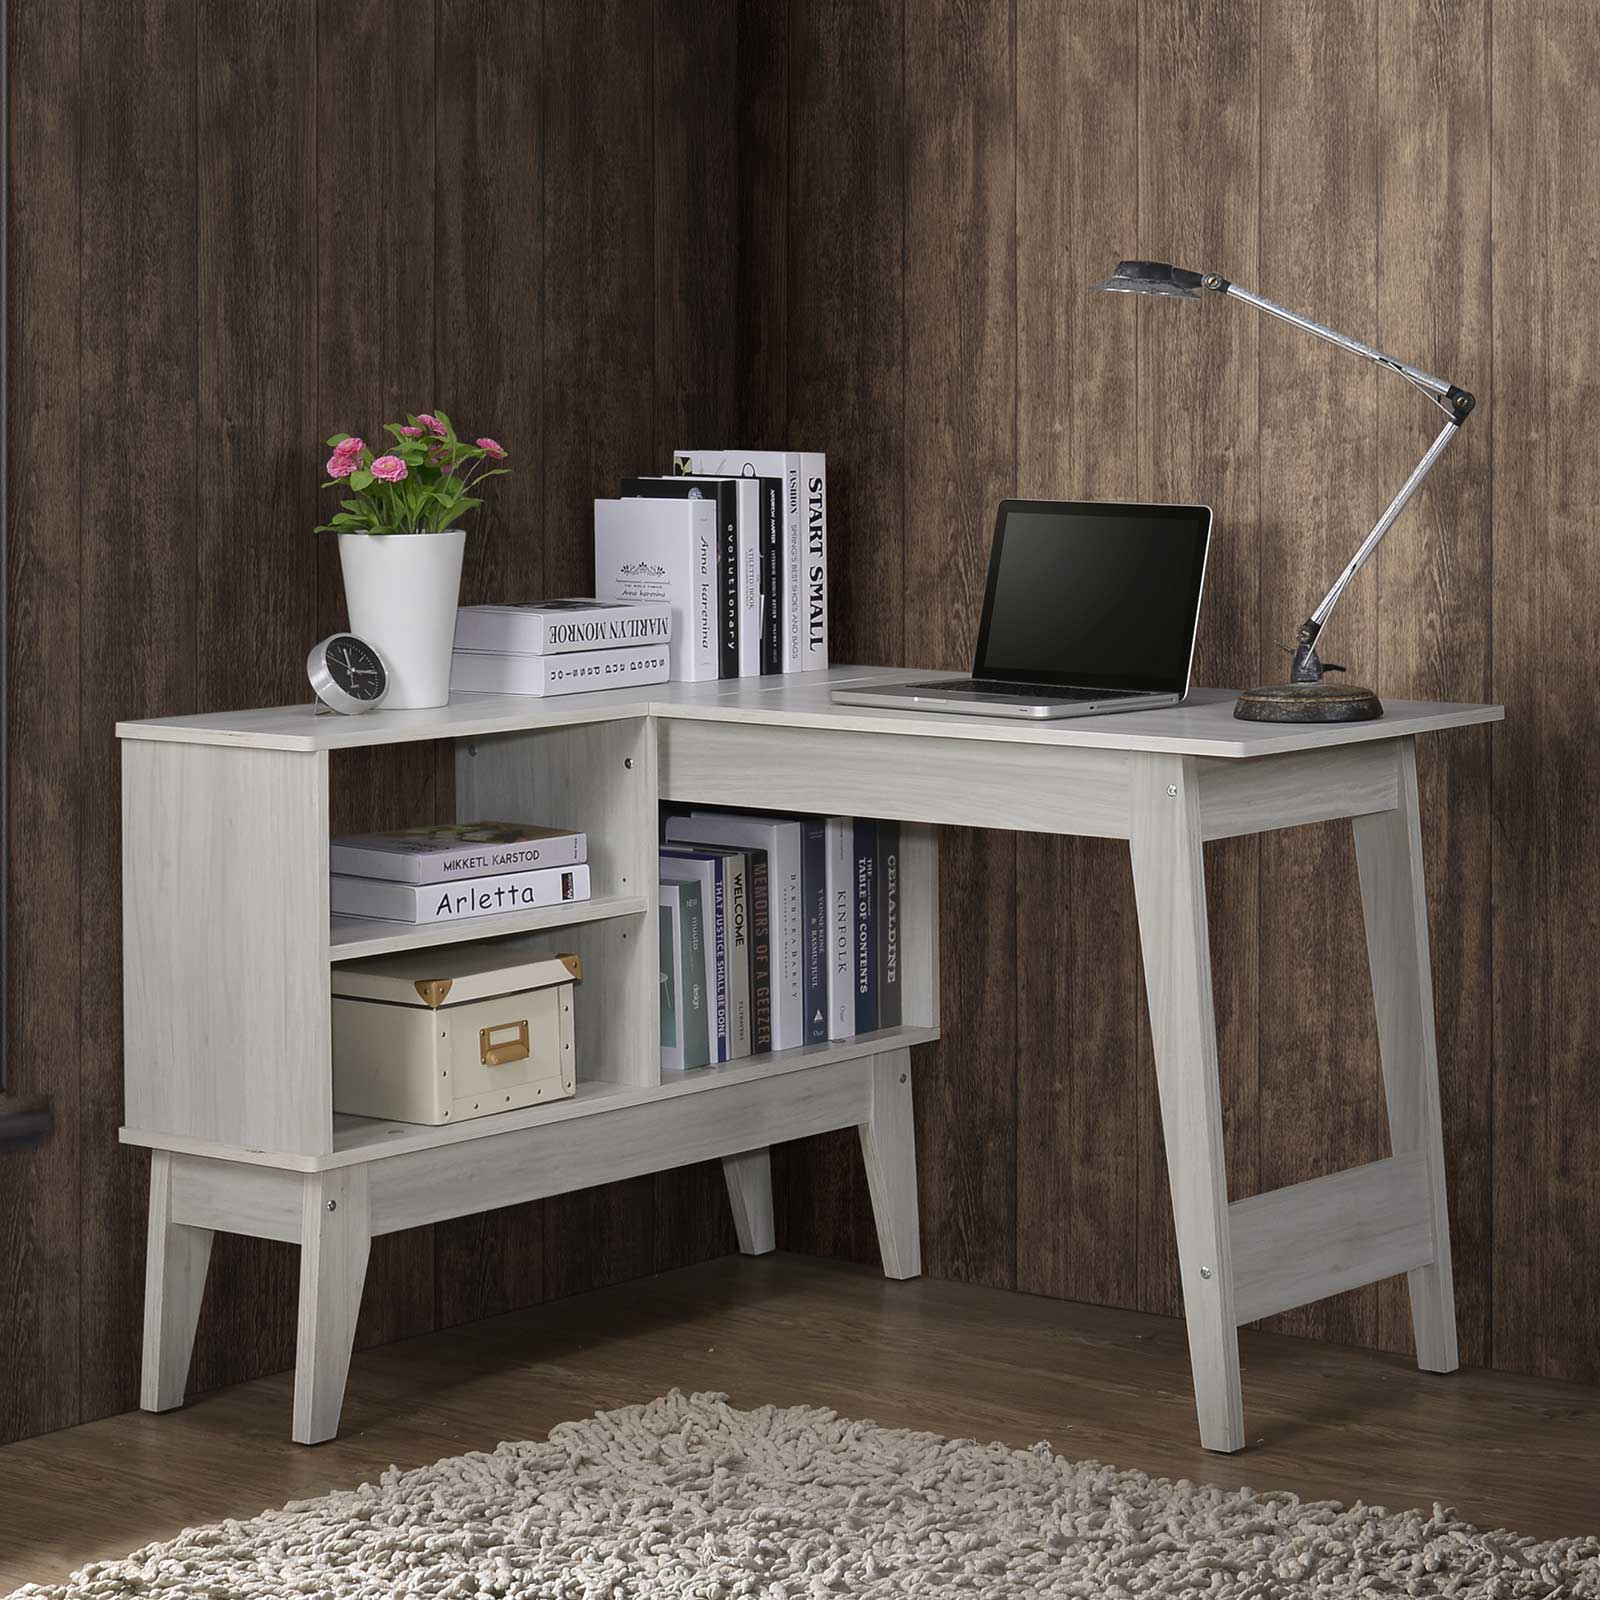 L-Shaped Computer Corner Desk (Free Installation + Delivery) Study Table Home Office Drawer Laptop ⭐ E-LIVING Furniture